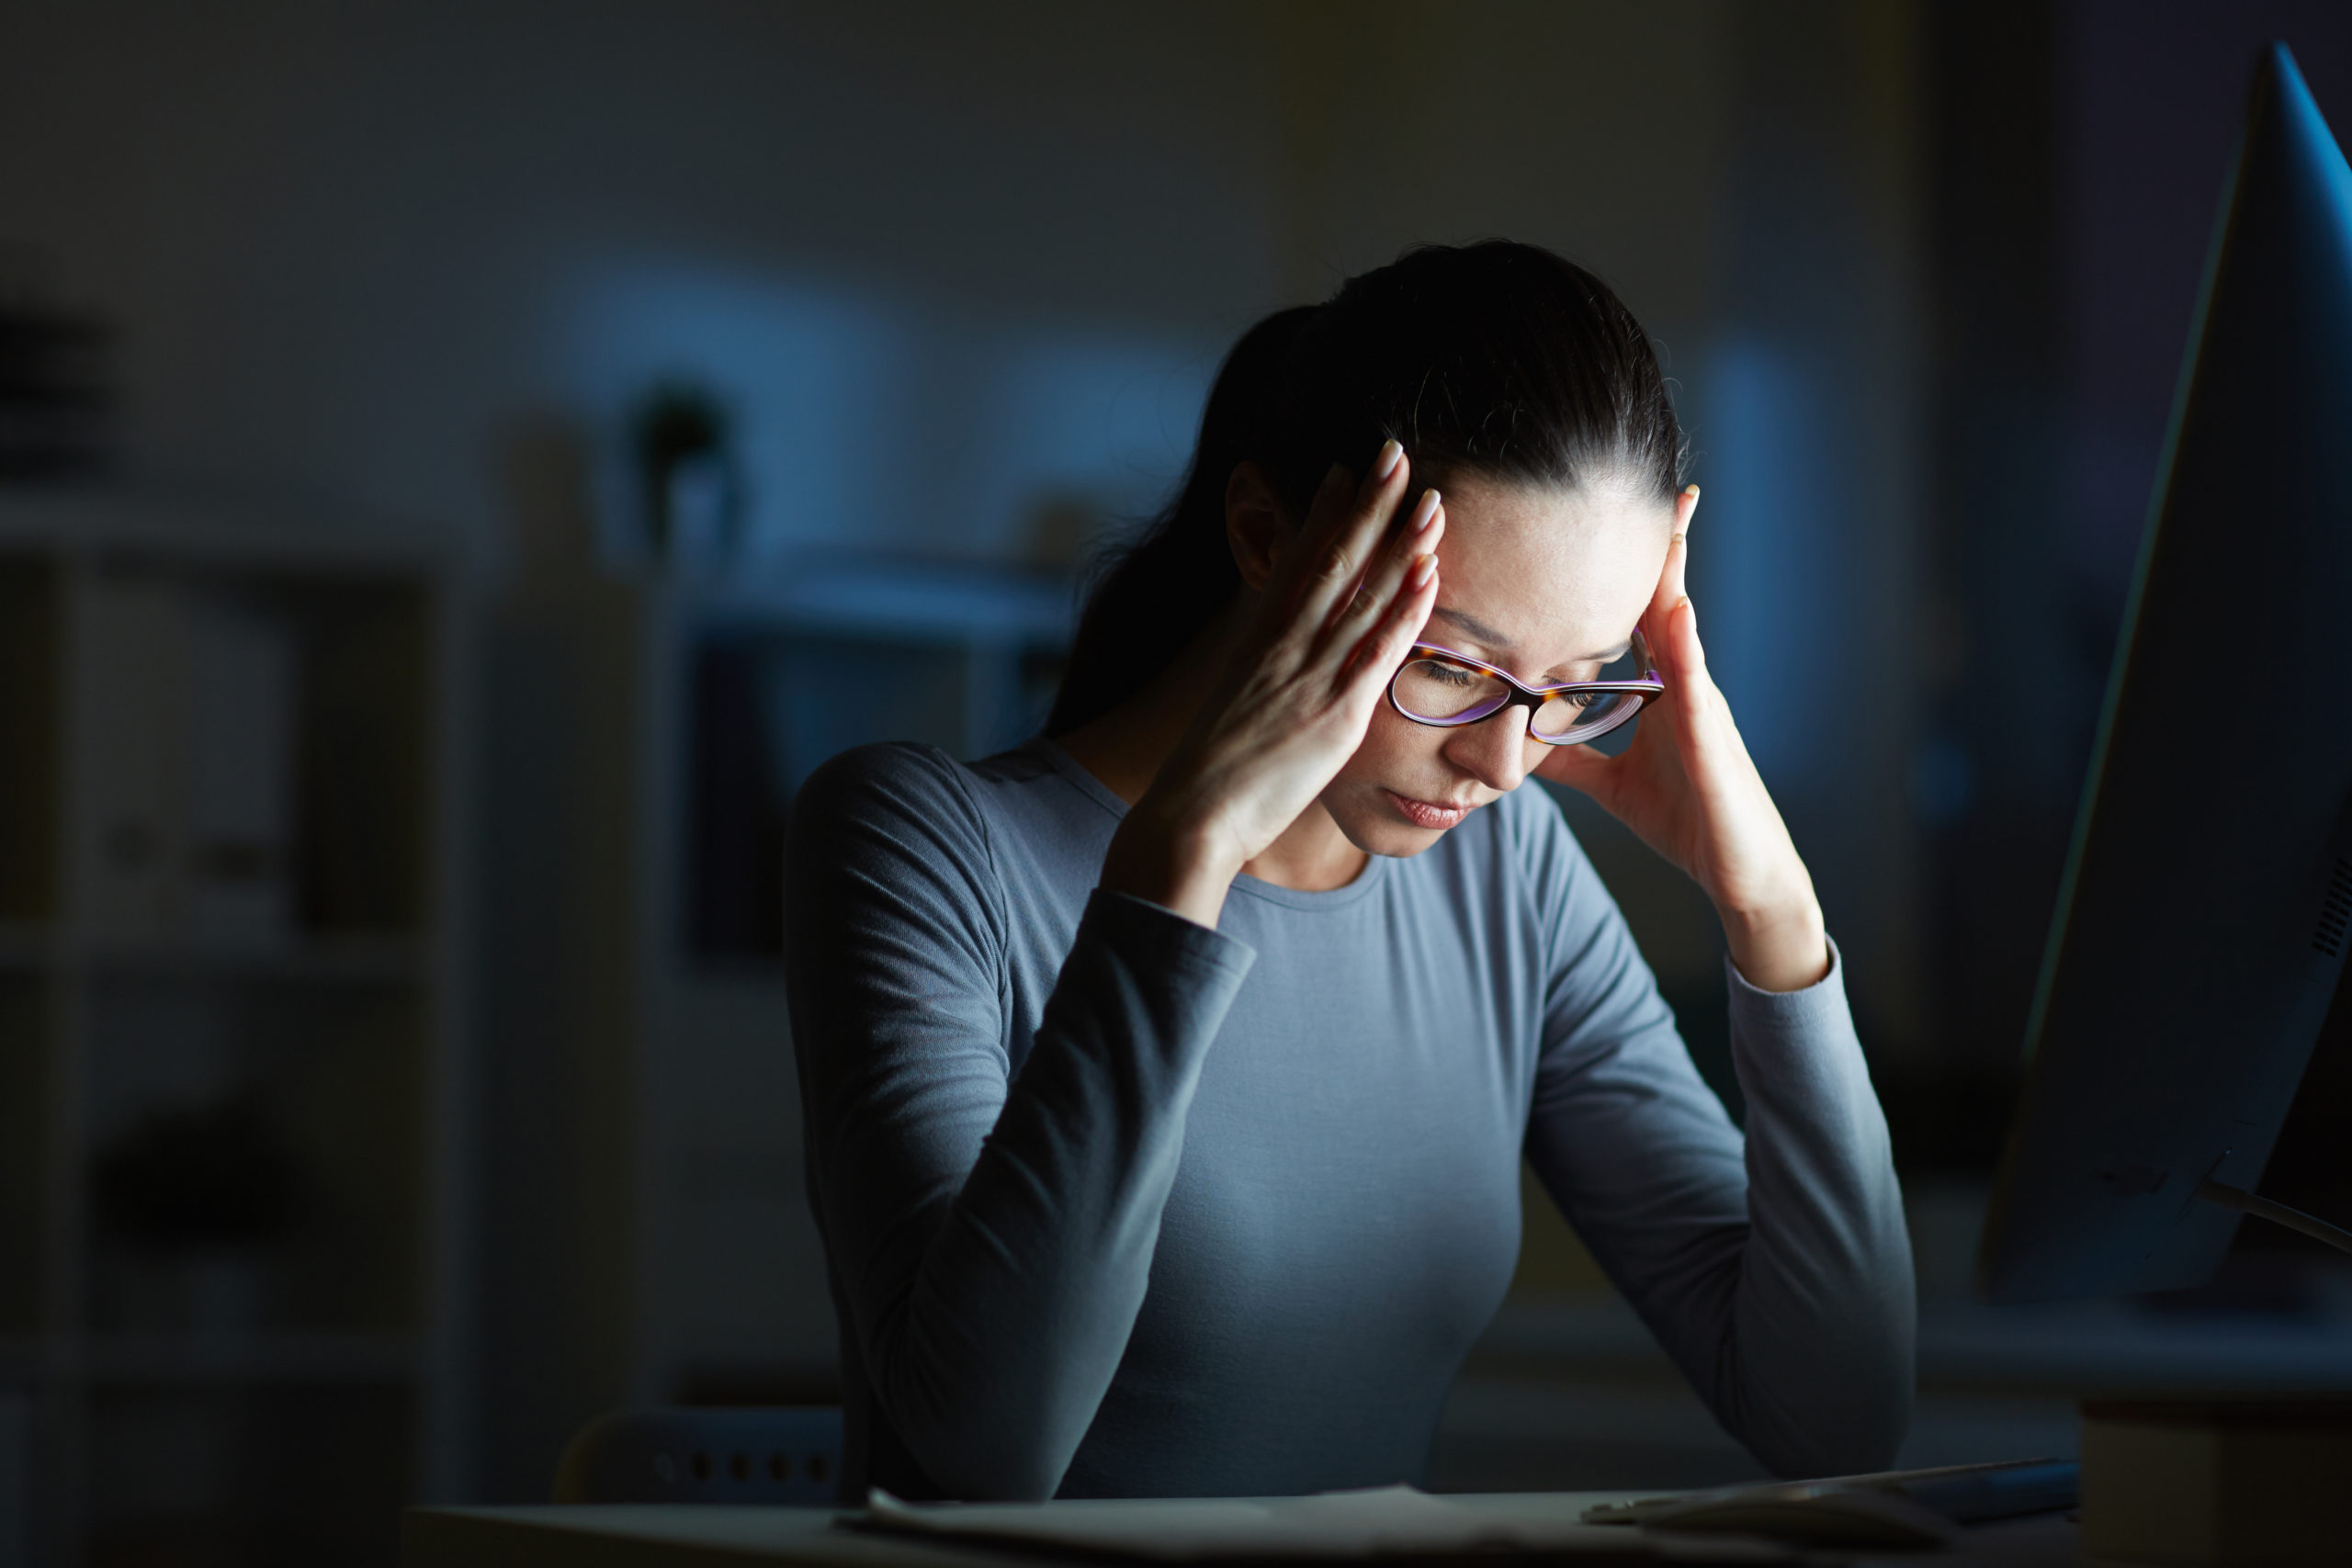 Young businesswoman with headache touching her head while sitting in front of computer monitor by her workplace at night